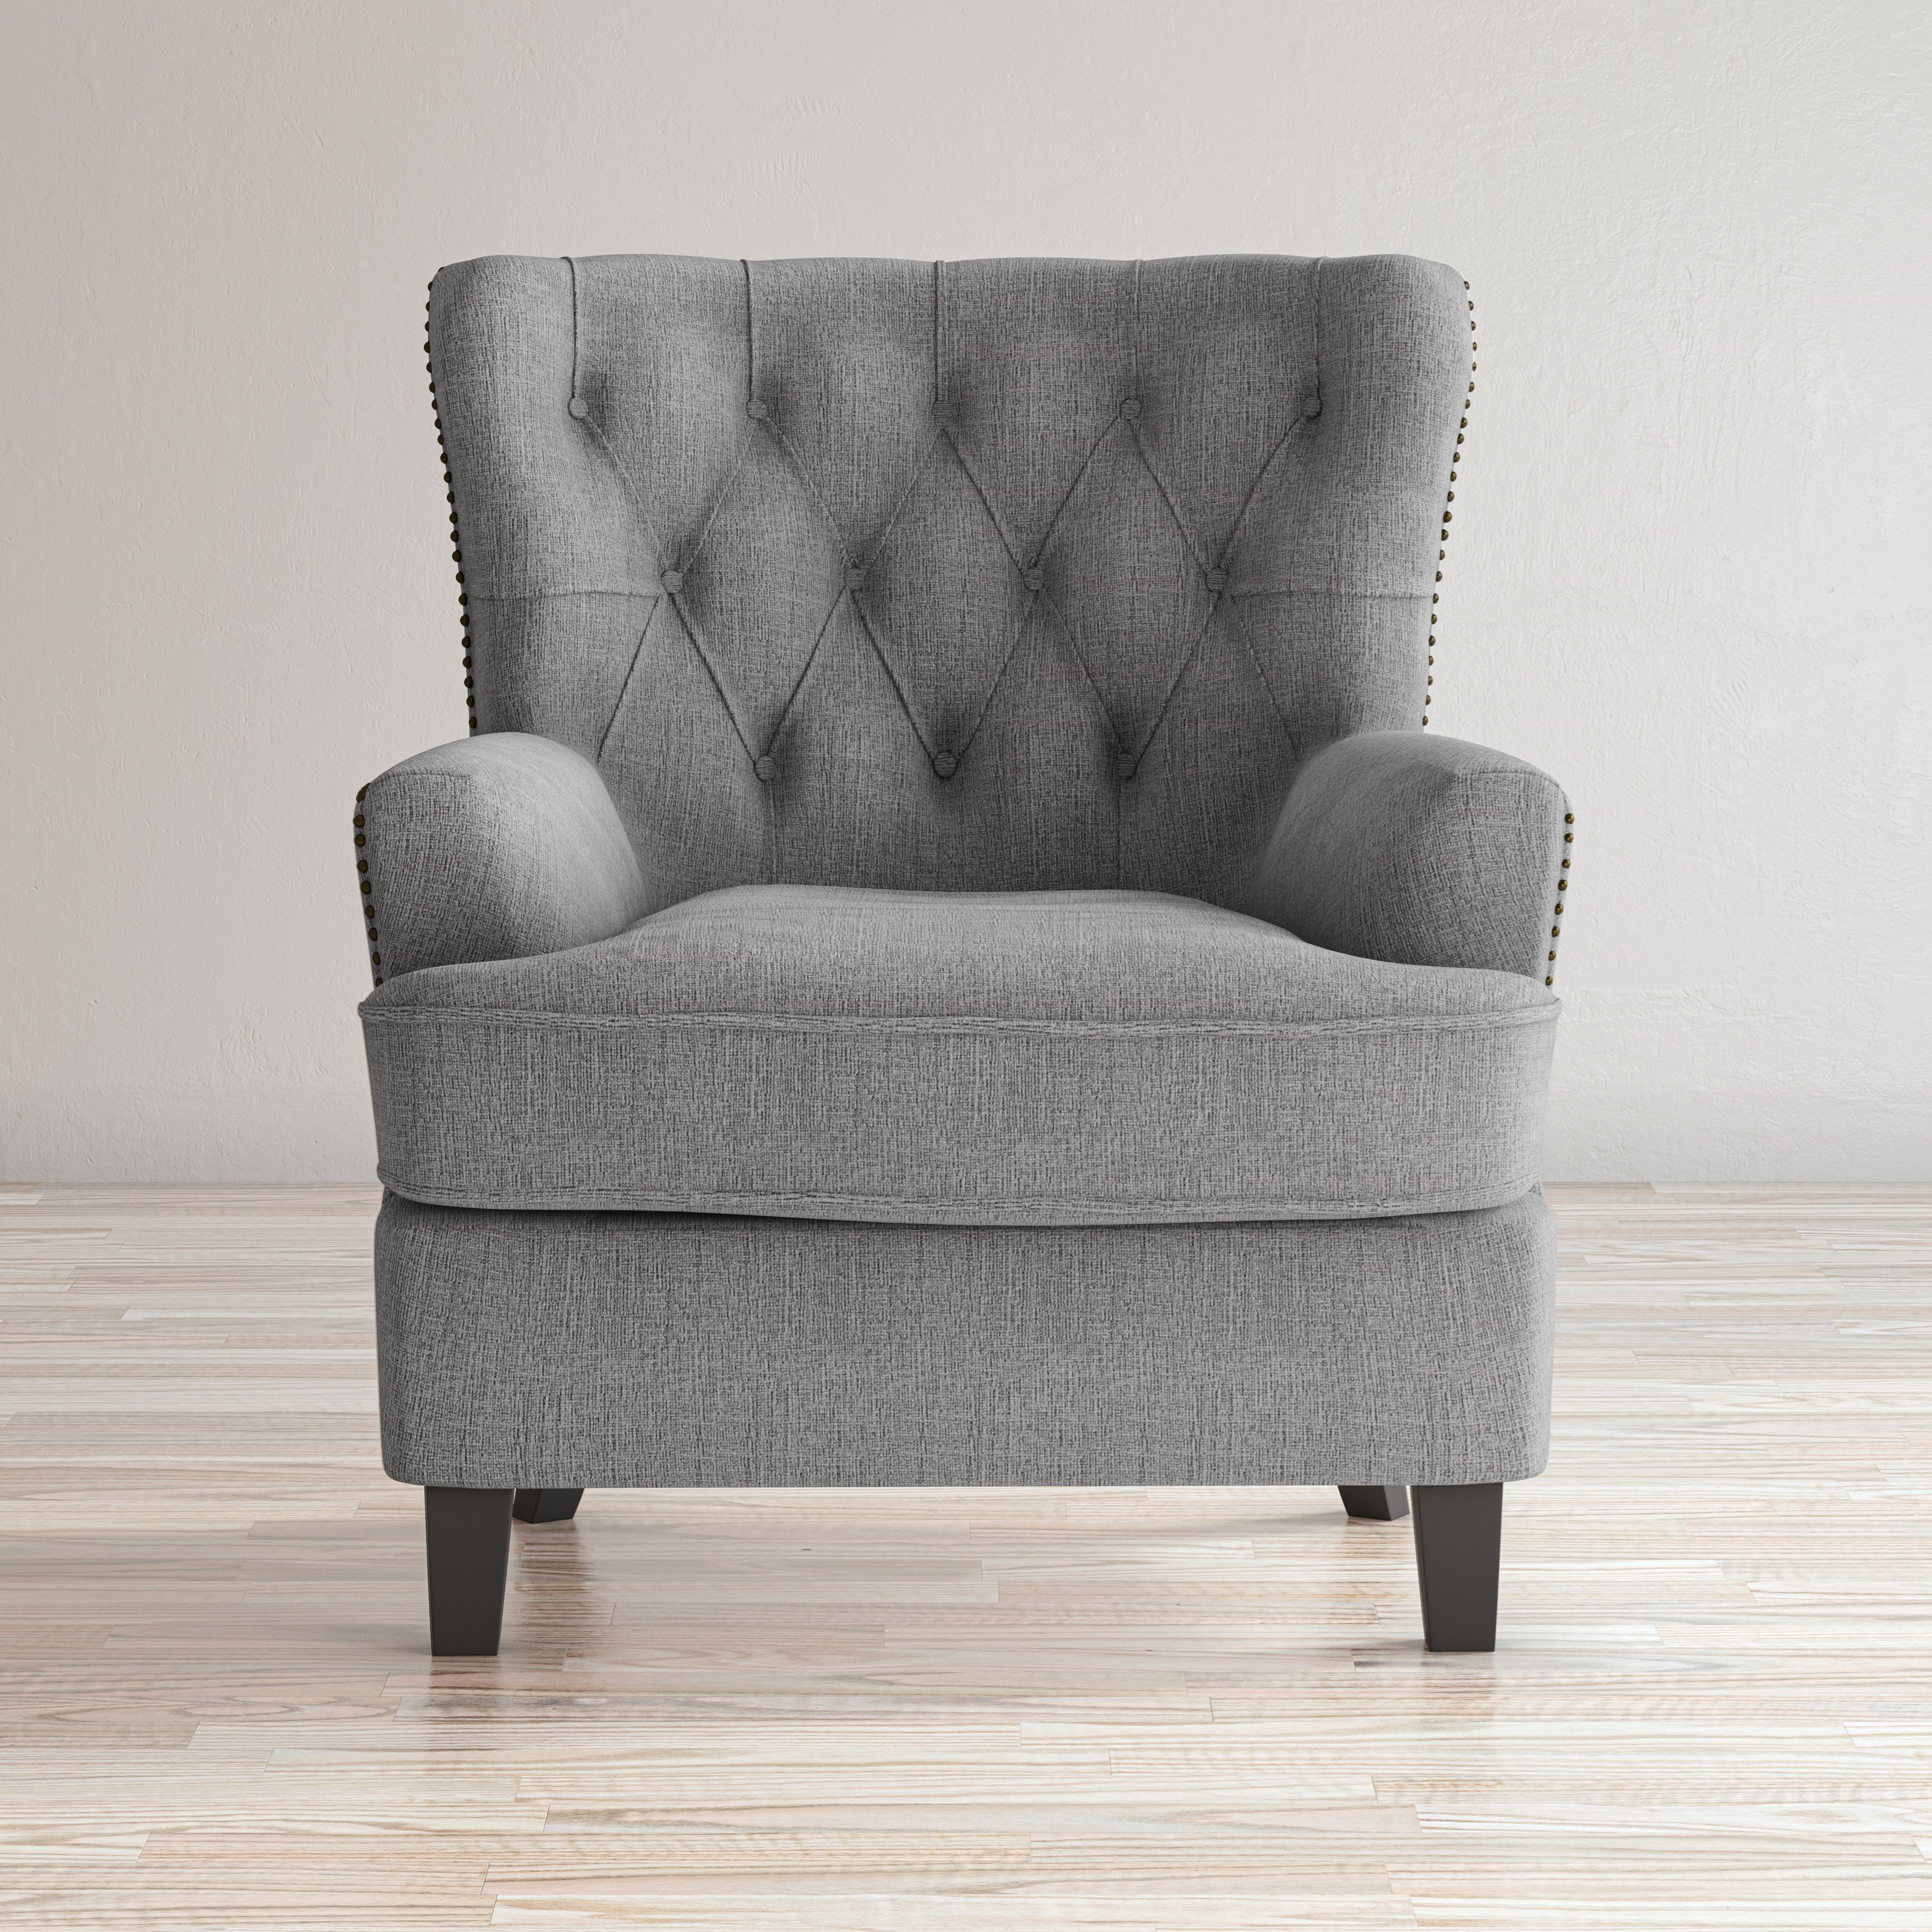 Bryson Bryson Chair by Jofran at Darvin Furniture